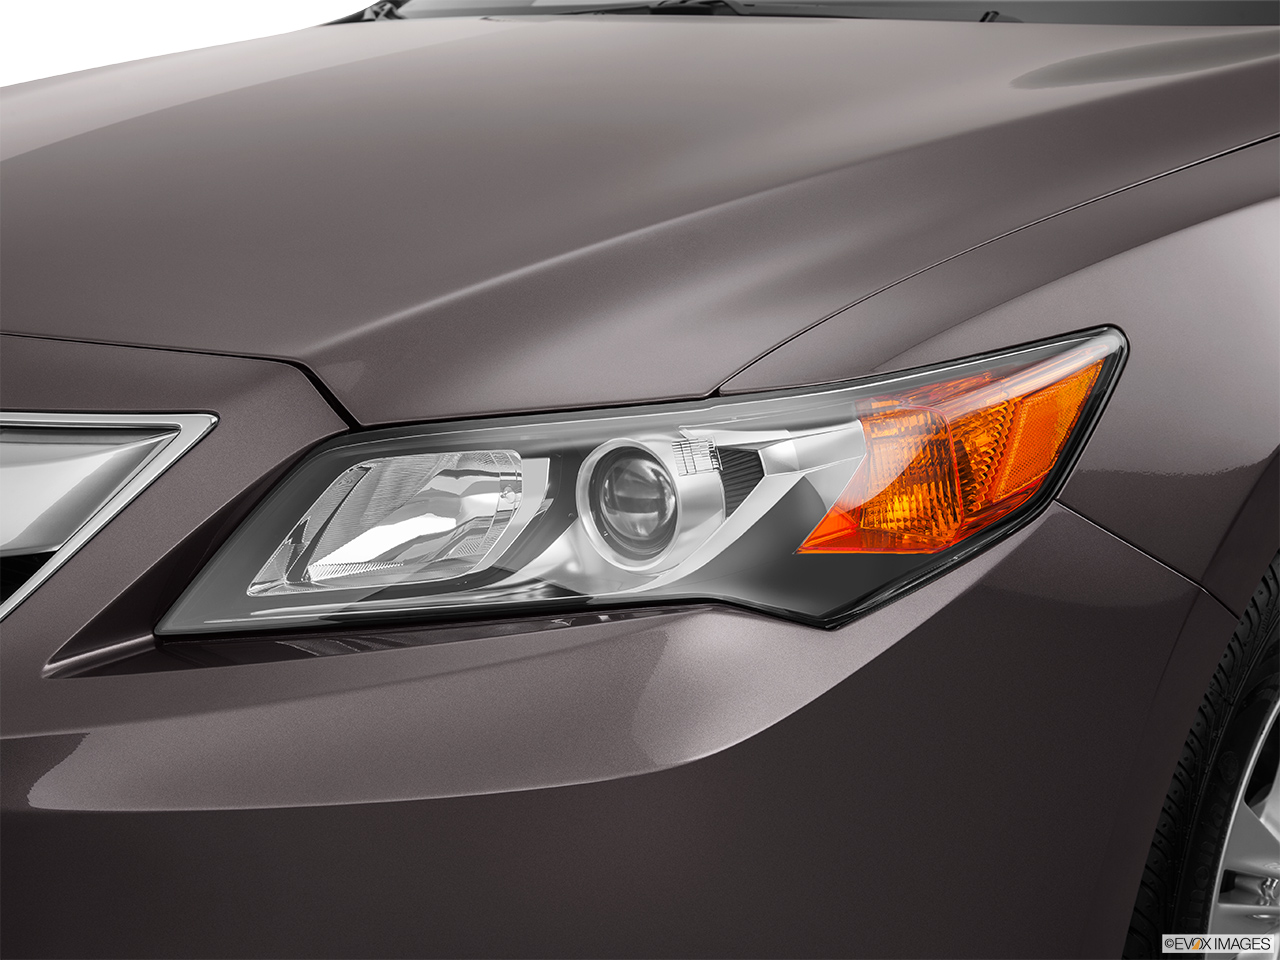 2014 Acura ILX Hybrid Base Drivers Side Headlight.